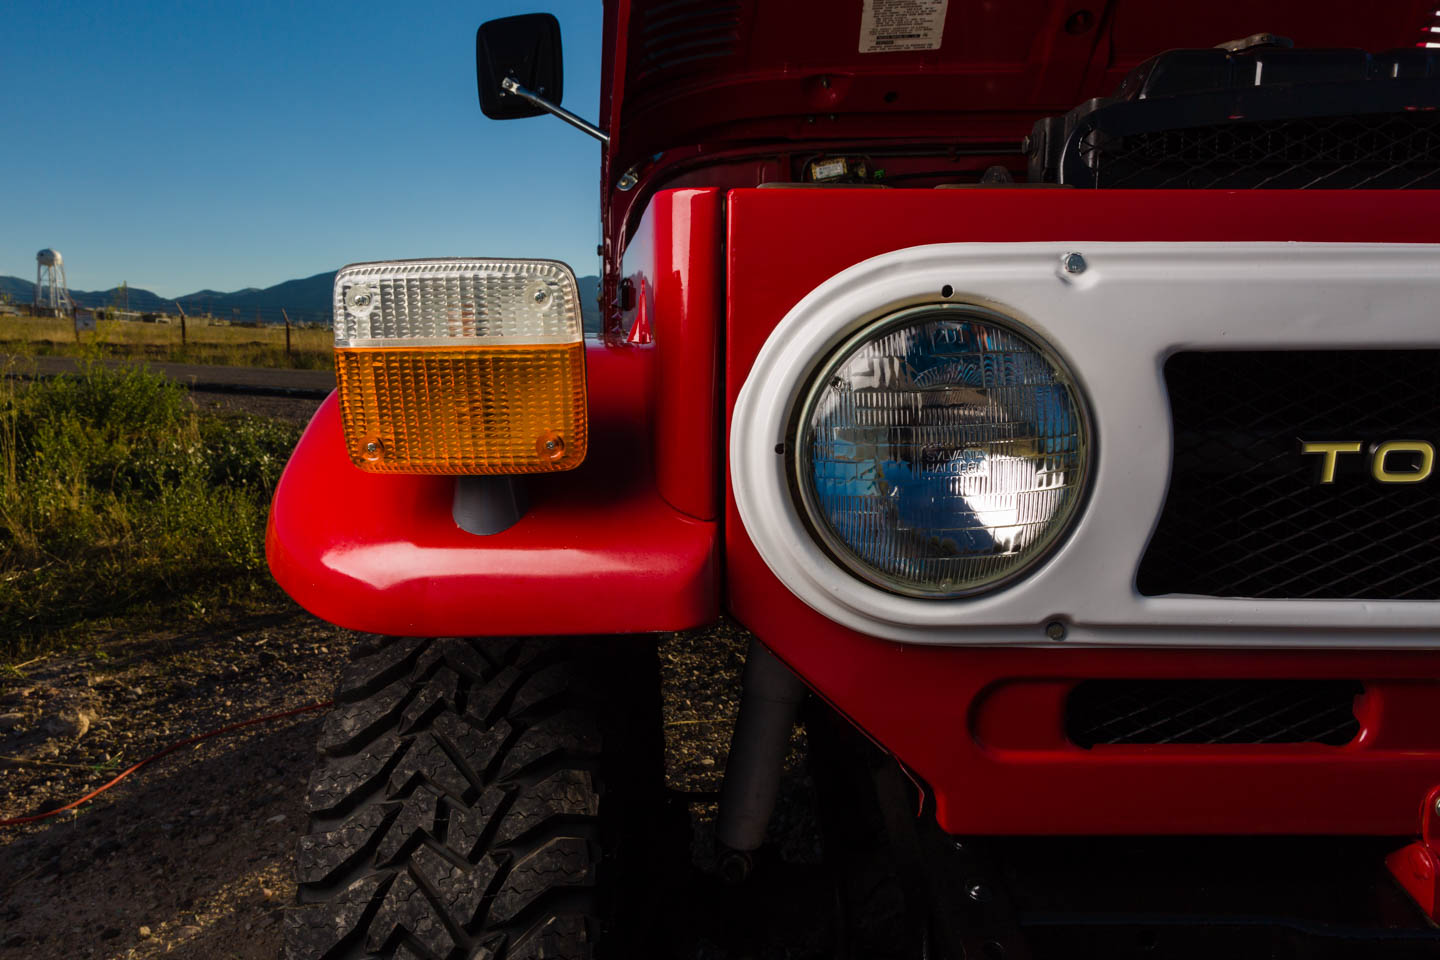 Headlight for Toyota Land Cruiser